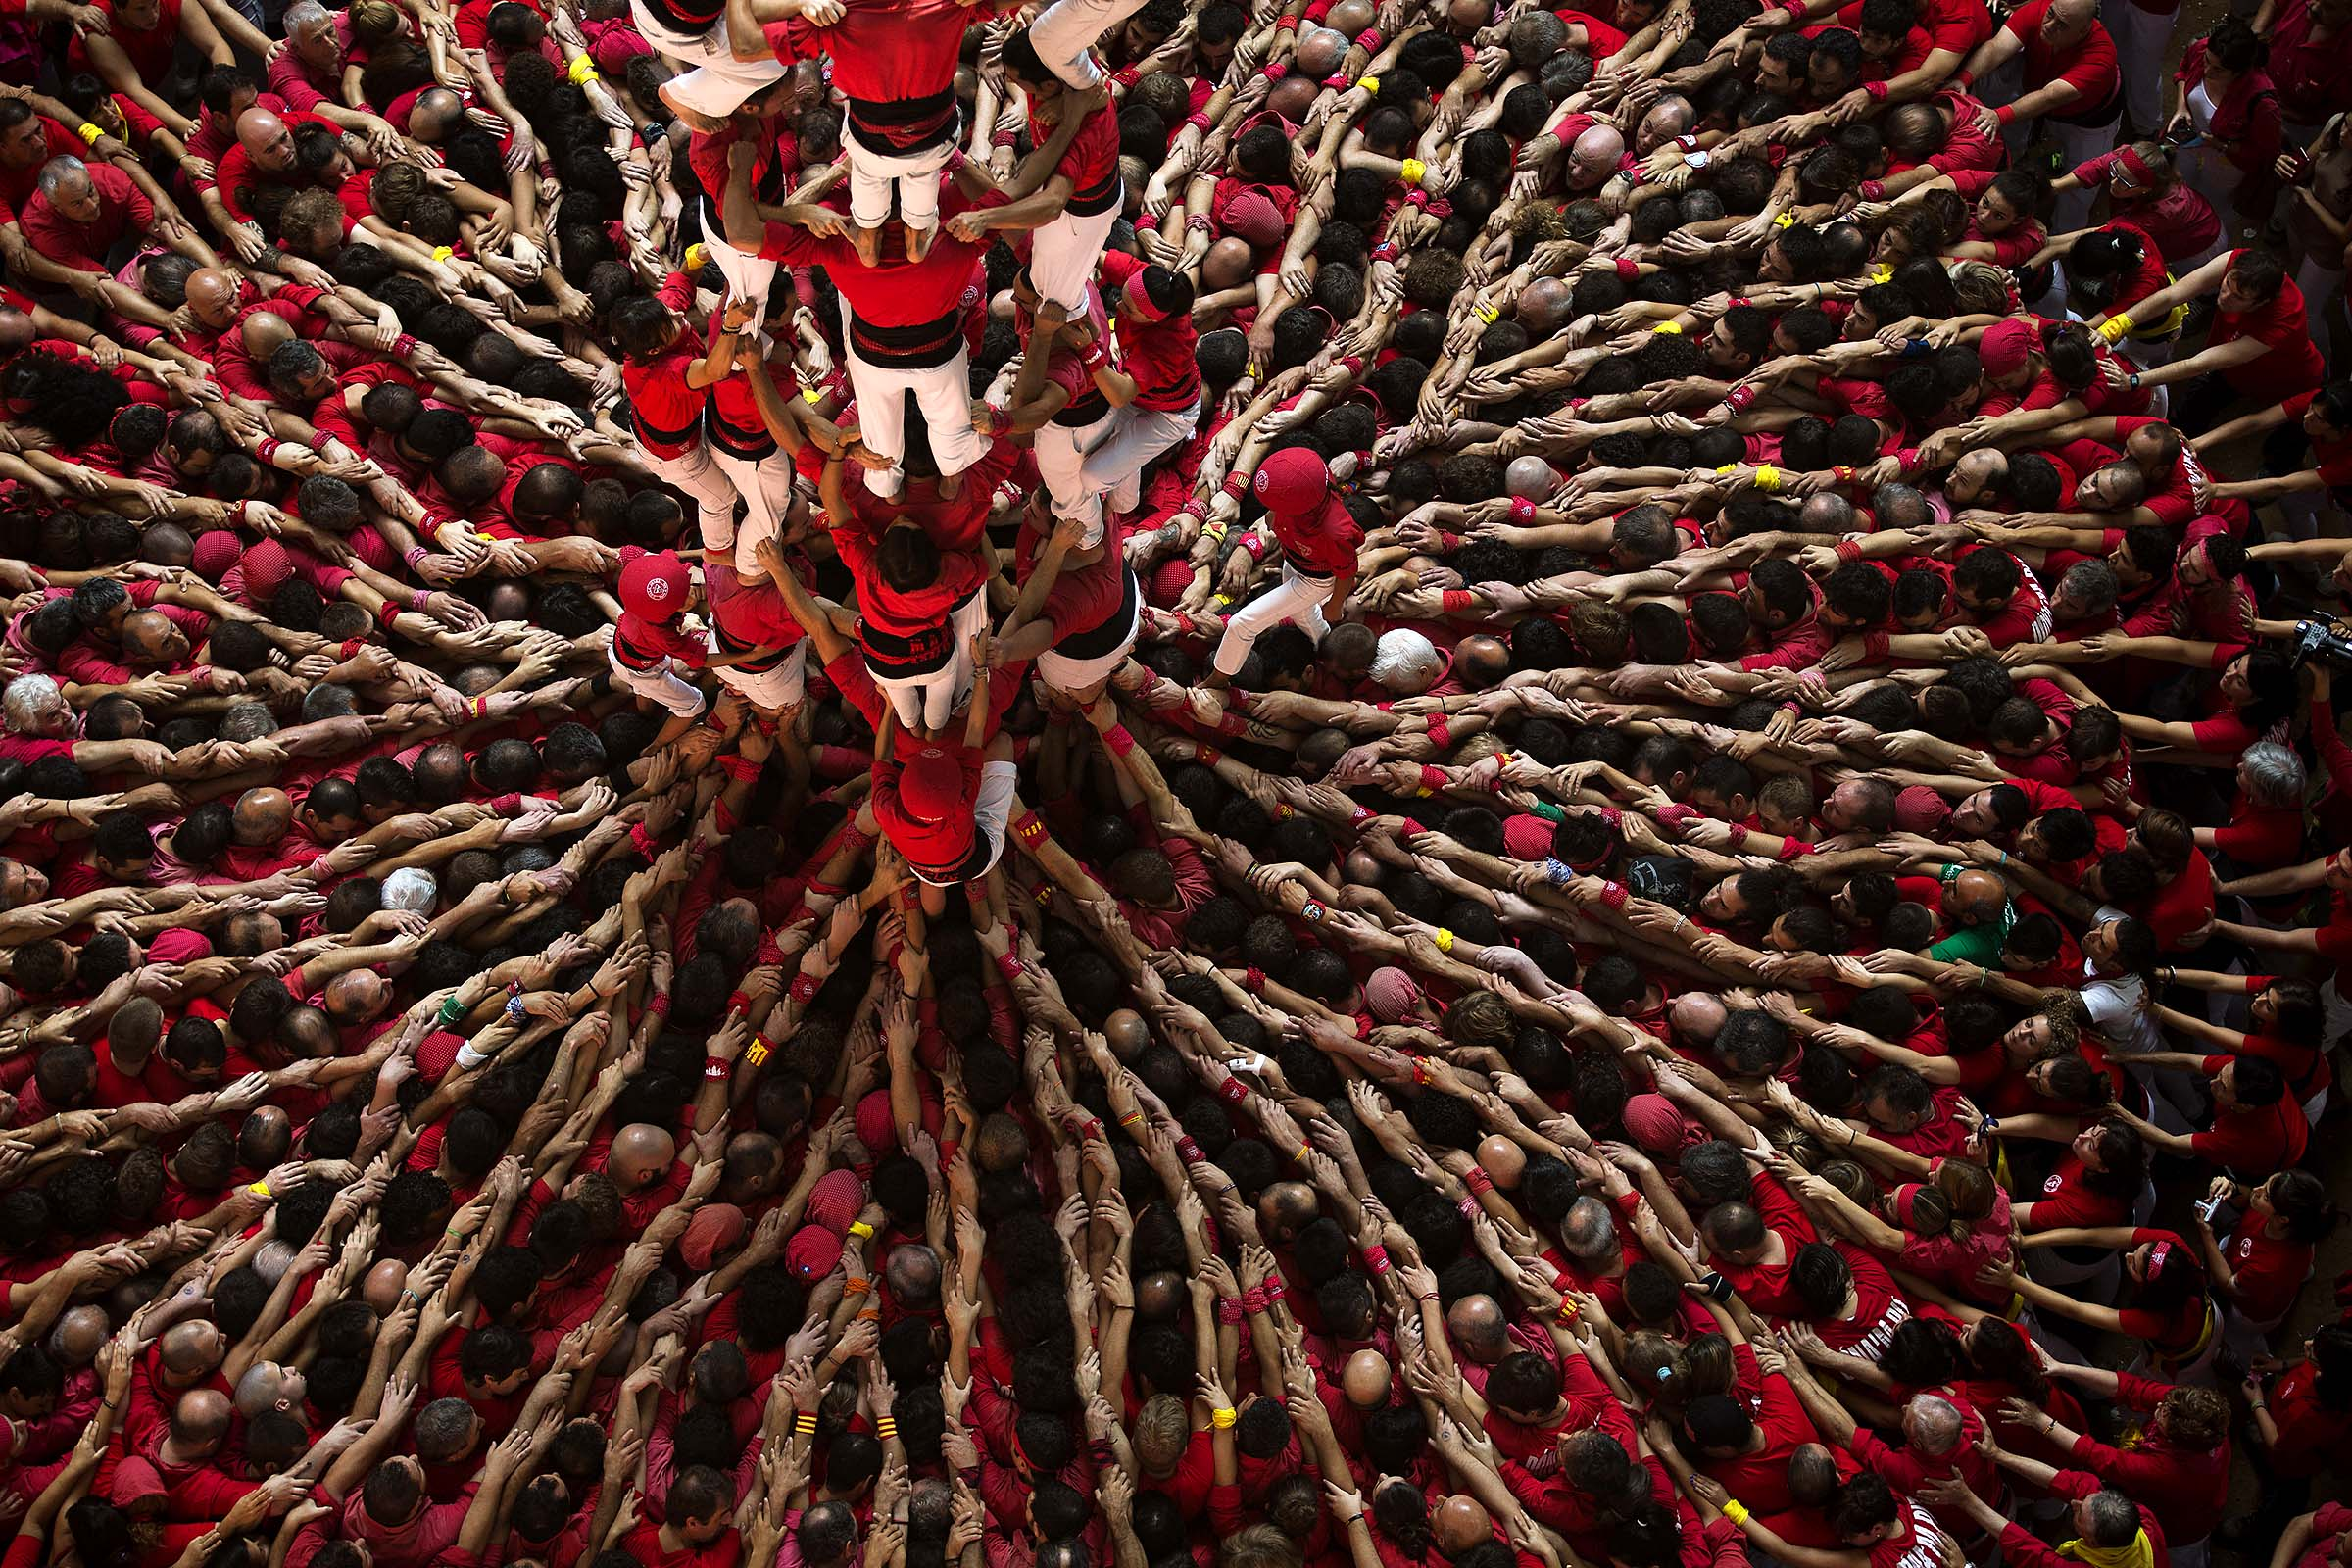 Members of the Castellers Joves Xiquets de Valls try to complete their human tower during the 25th Human Tower Competition in Tarragona, Spain. (Emilio Morenatti/Associated Press)